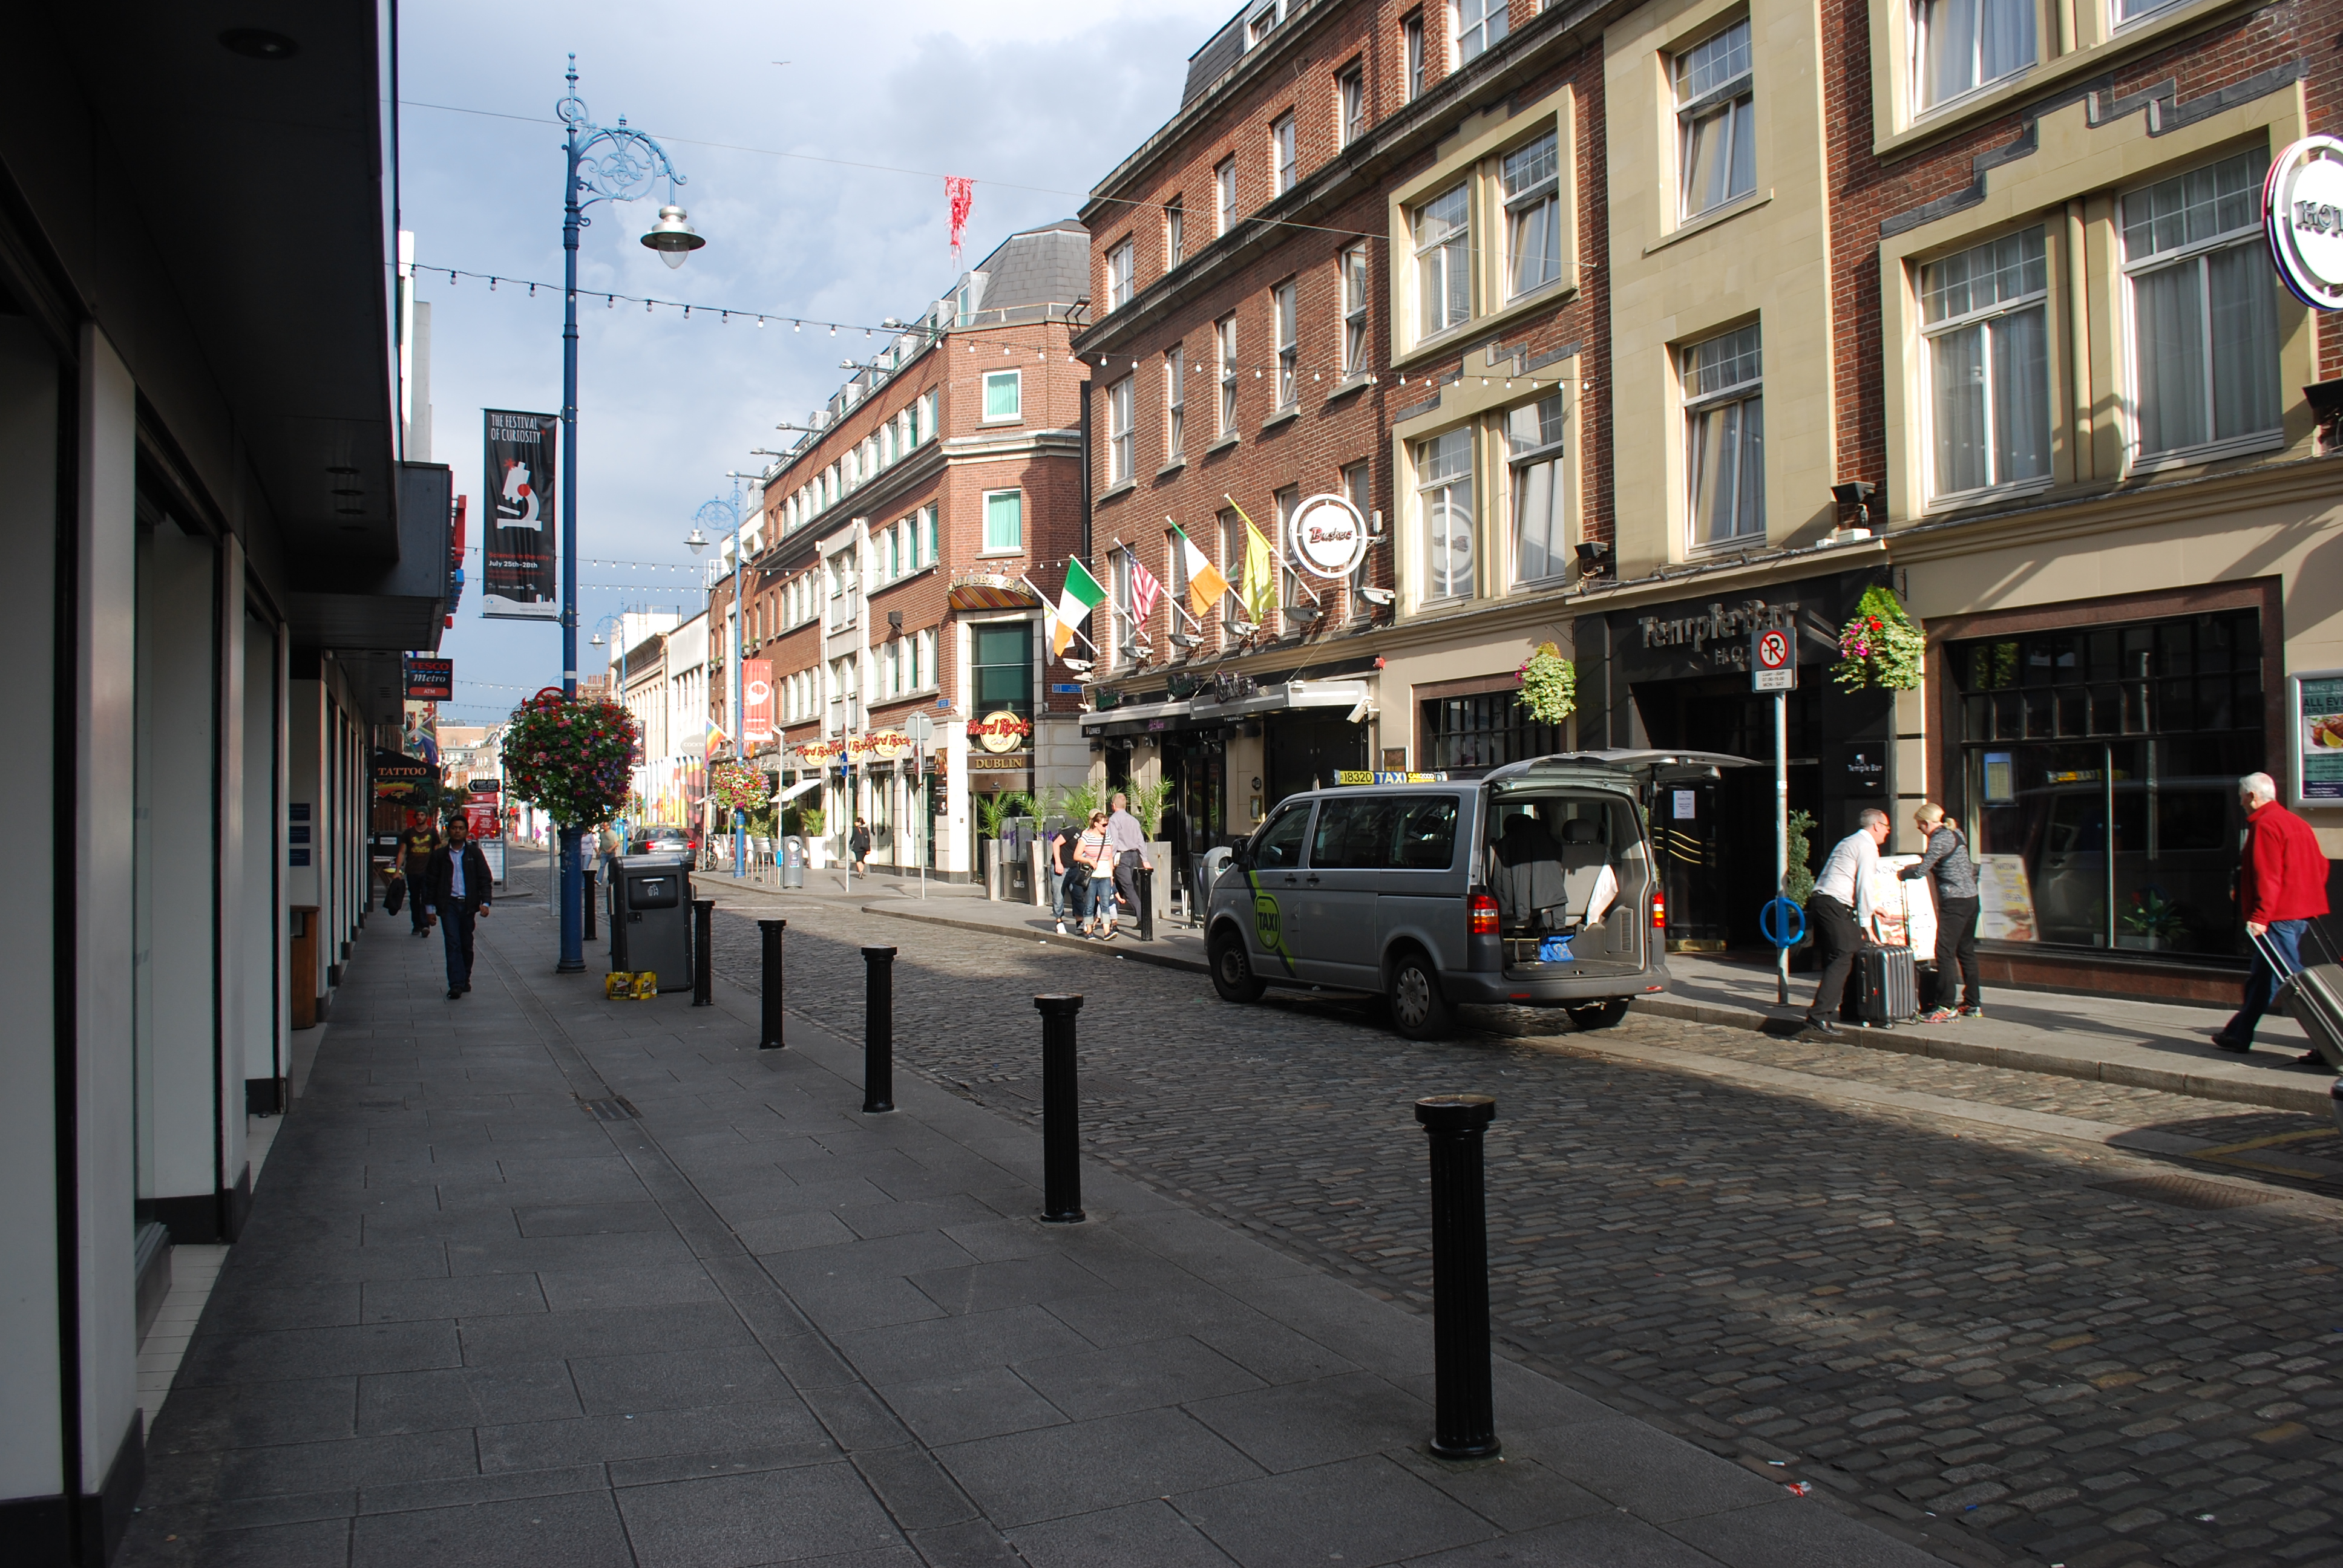 Modern-day Fleet Street in Dublin. By Jean Housen (Own work) [CC BY-SA 3.0 (http://creativecommons.org/licenses/by-sa/3.0)], via Wikimedia Commons